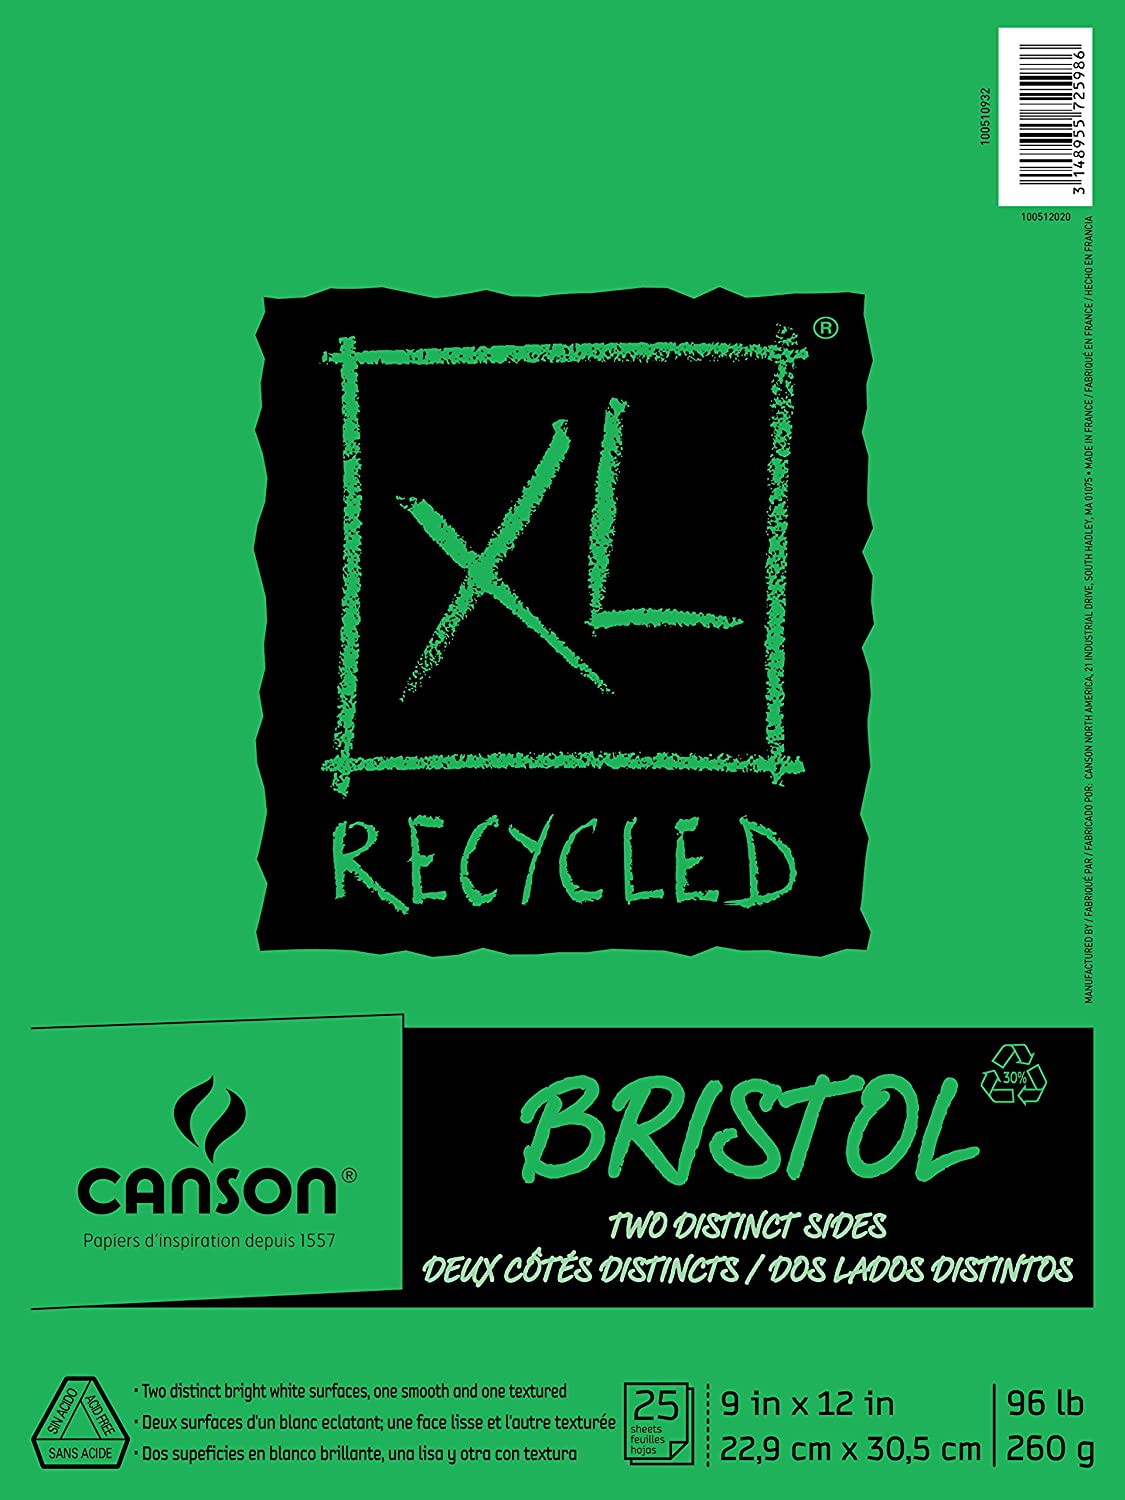 Canson XL Series Recycled Bristol Paper Pad, Dual Sided Smooth and Vellum for Pencil, Marker or Ink, Fold Over, 96 Pound, 14 x 17 In, White, 25 Sheets CANSON Inc 100510934